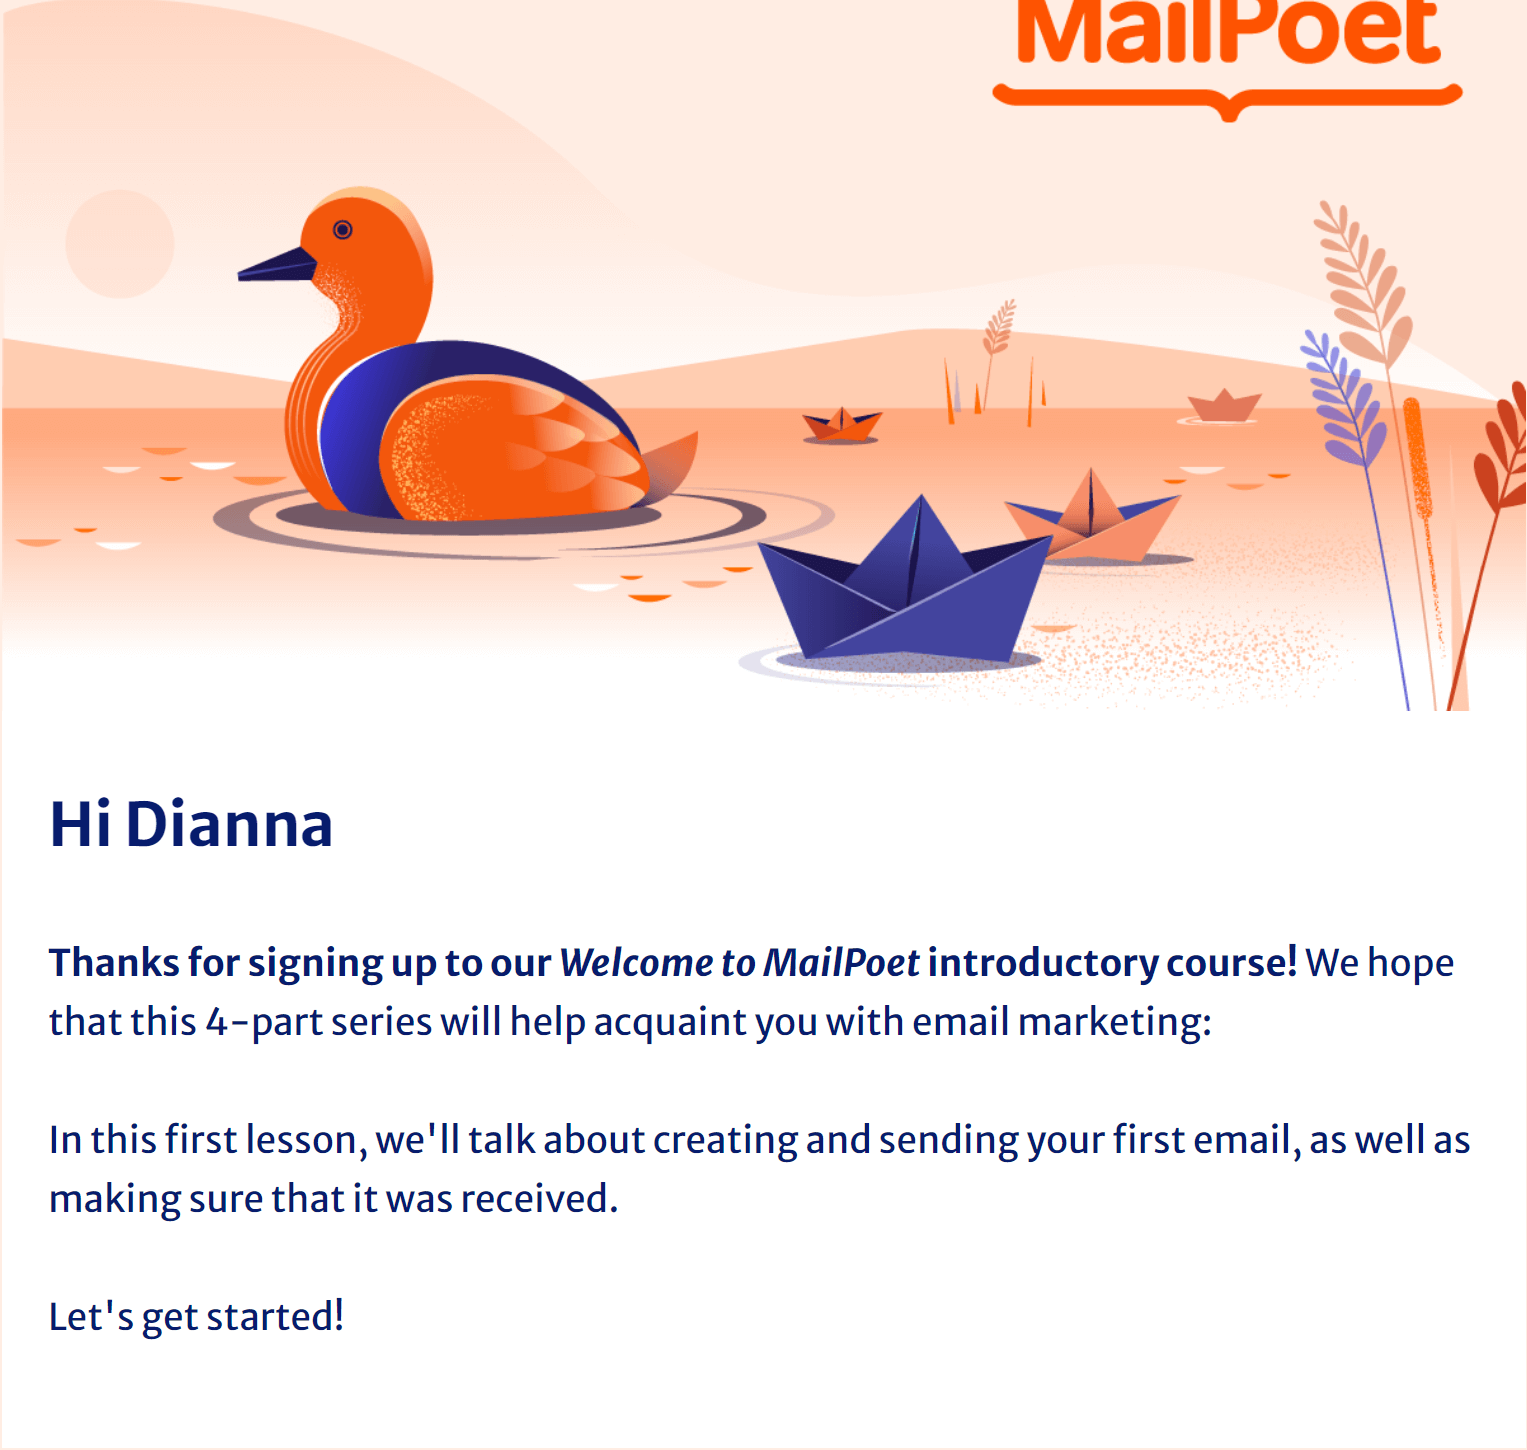 Example of an email course from MailPoet